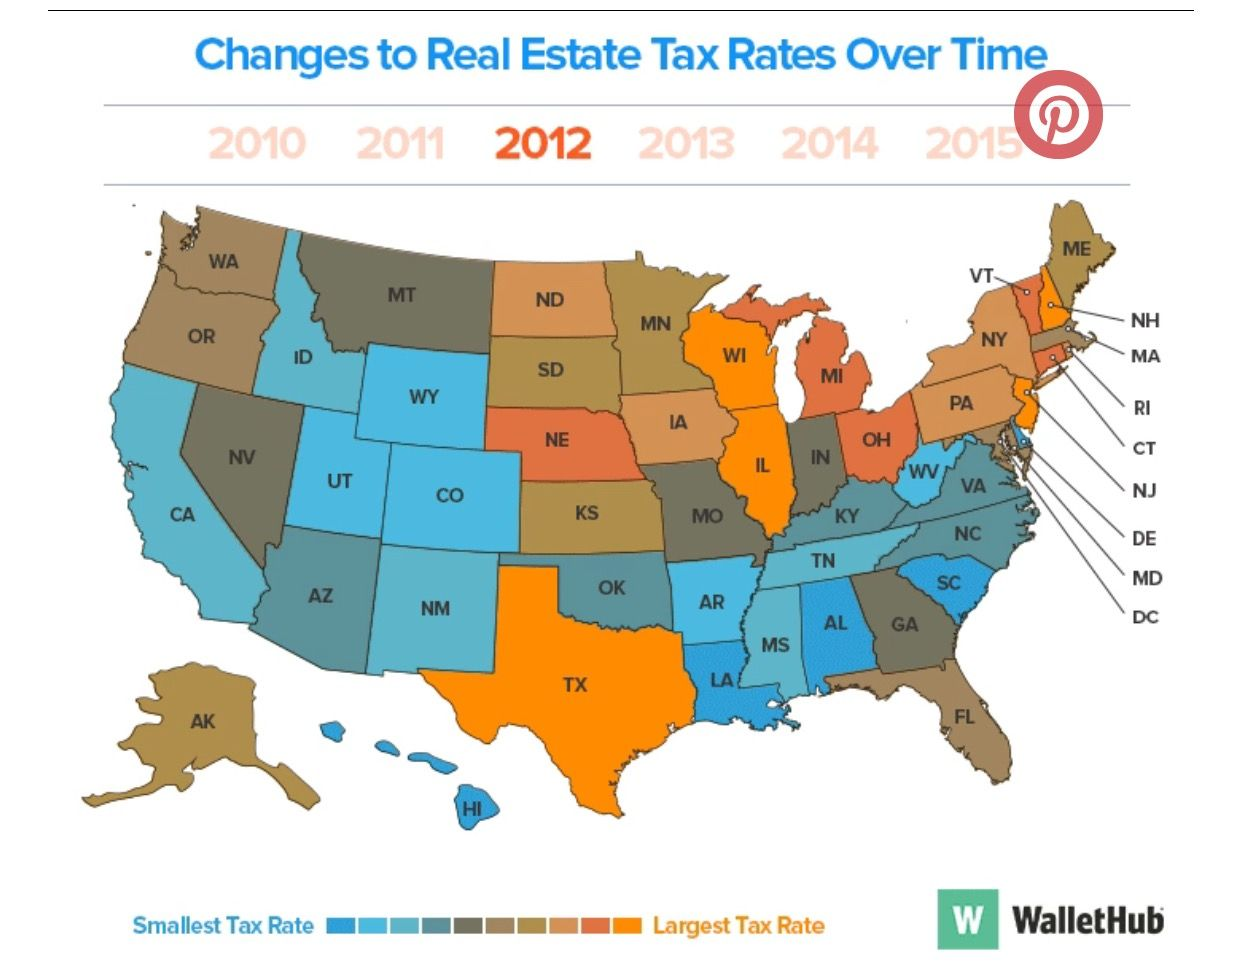 Florida Property Taxes Rank 27th Nationally States In America